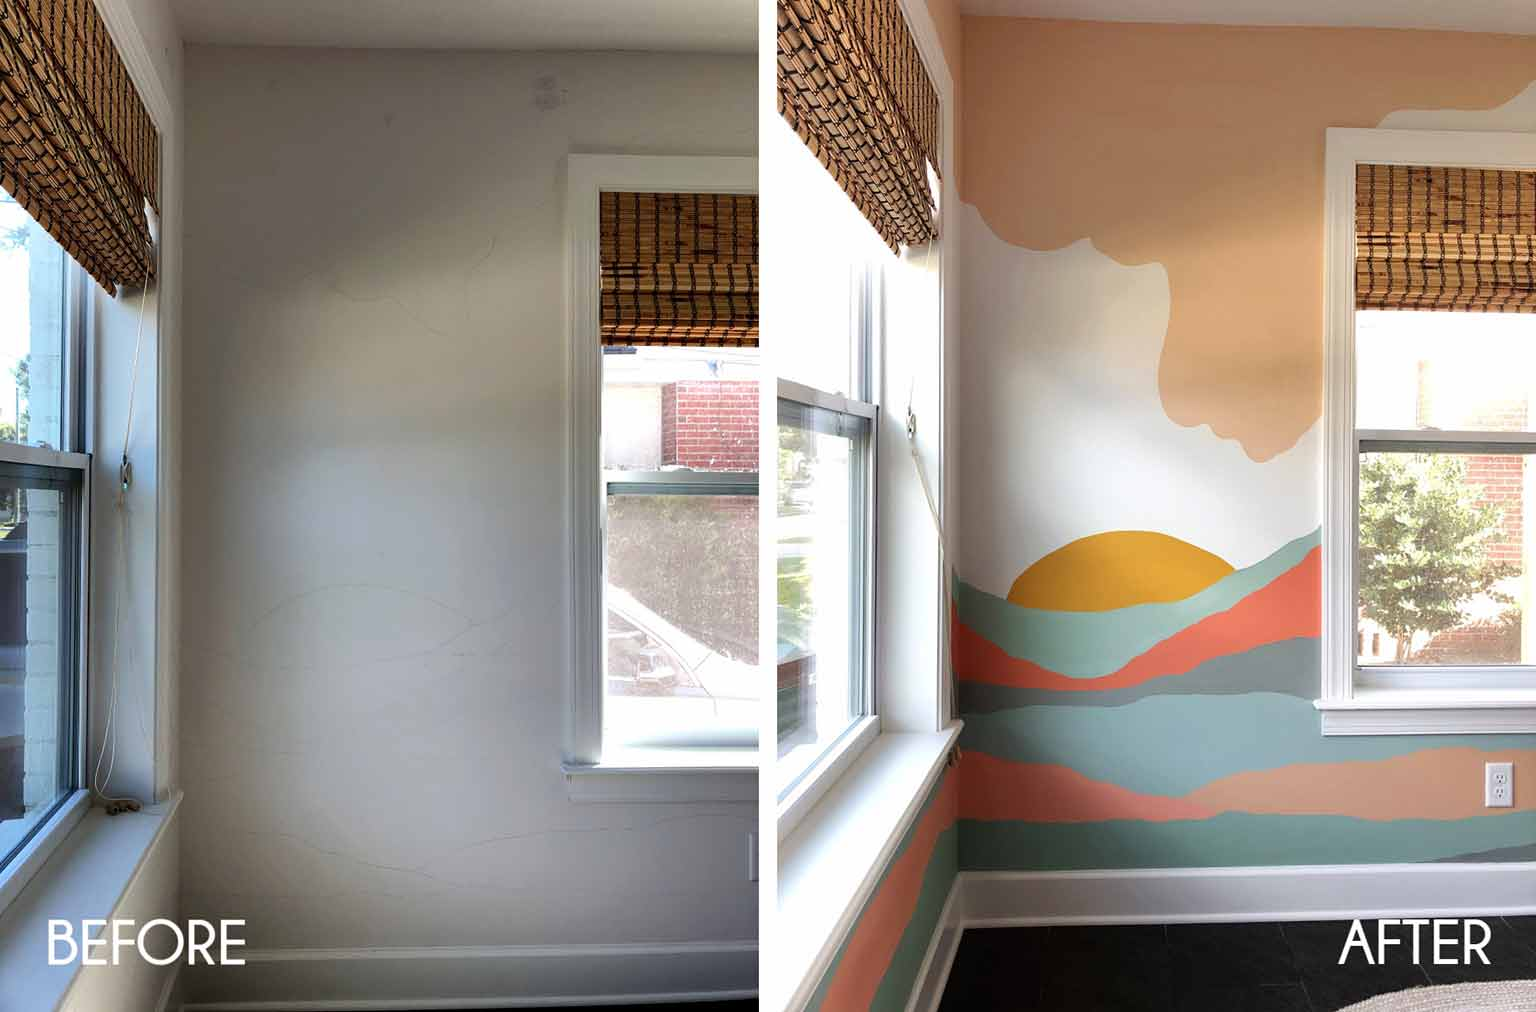 before and after wall mural